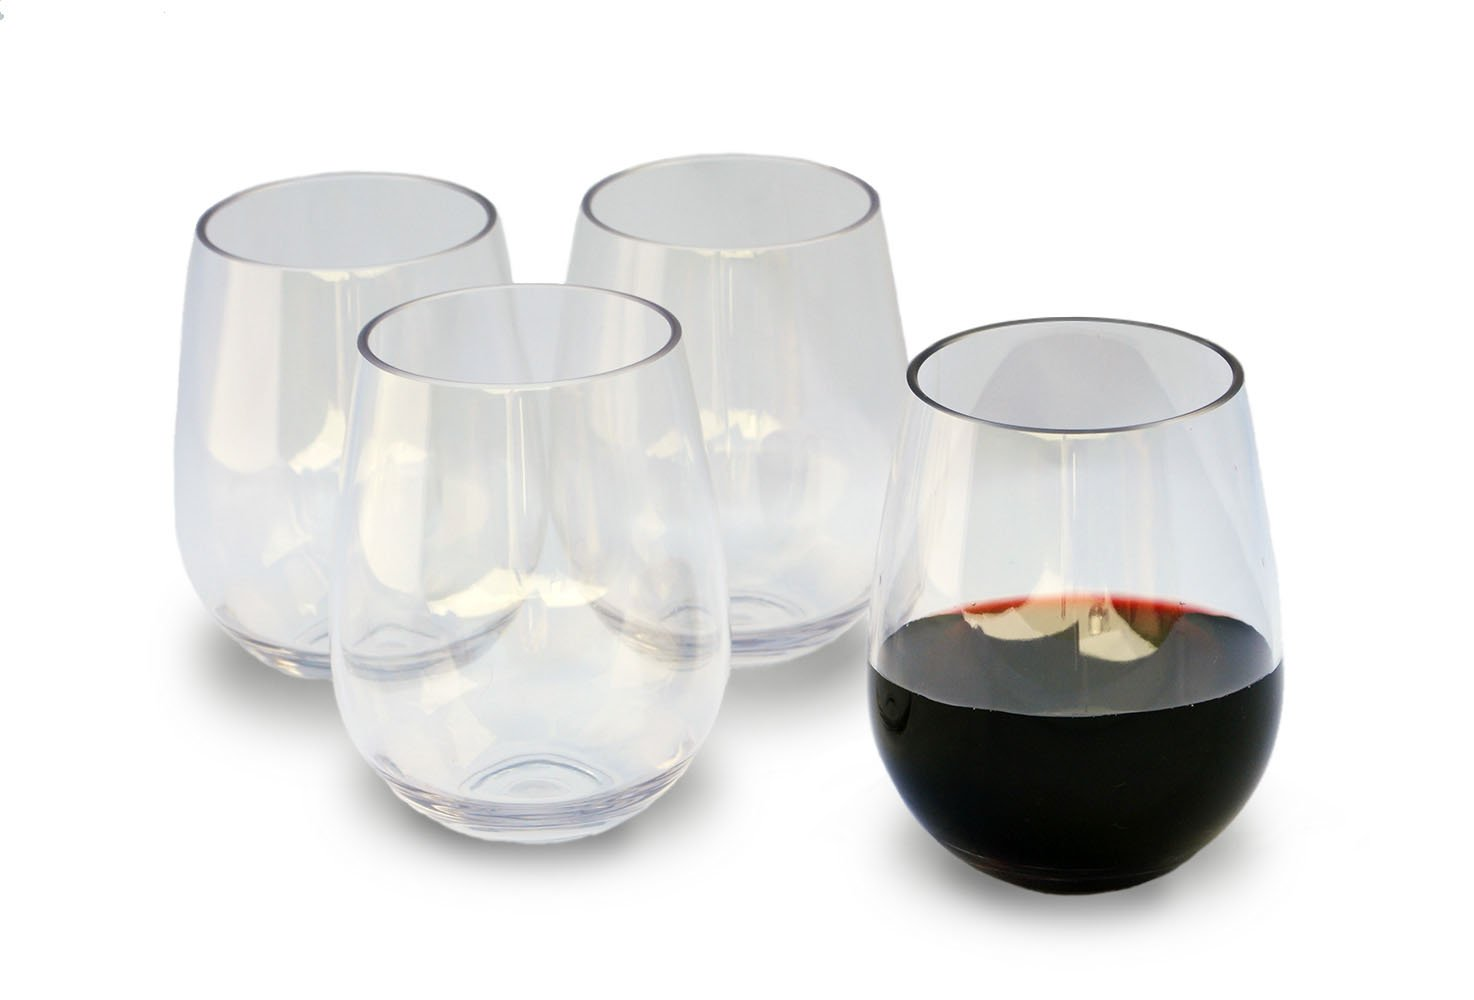 b527df7dd04 Unbreakable Stemless Wine Glasses, 16 Ounce Set of 4 by Candaven Home,  Heavy Gauge Triton Plastic, BPA Free, Shatterproof, Crystal Clear